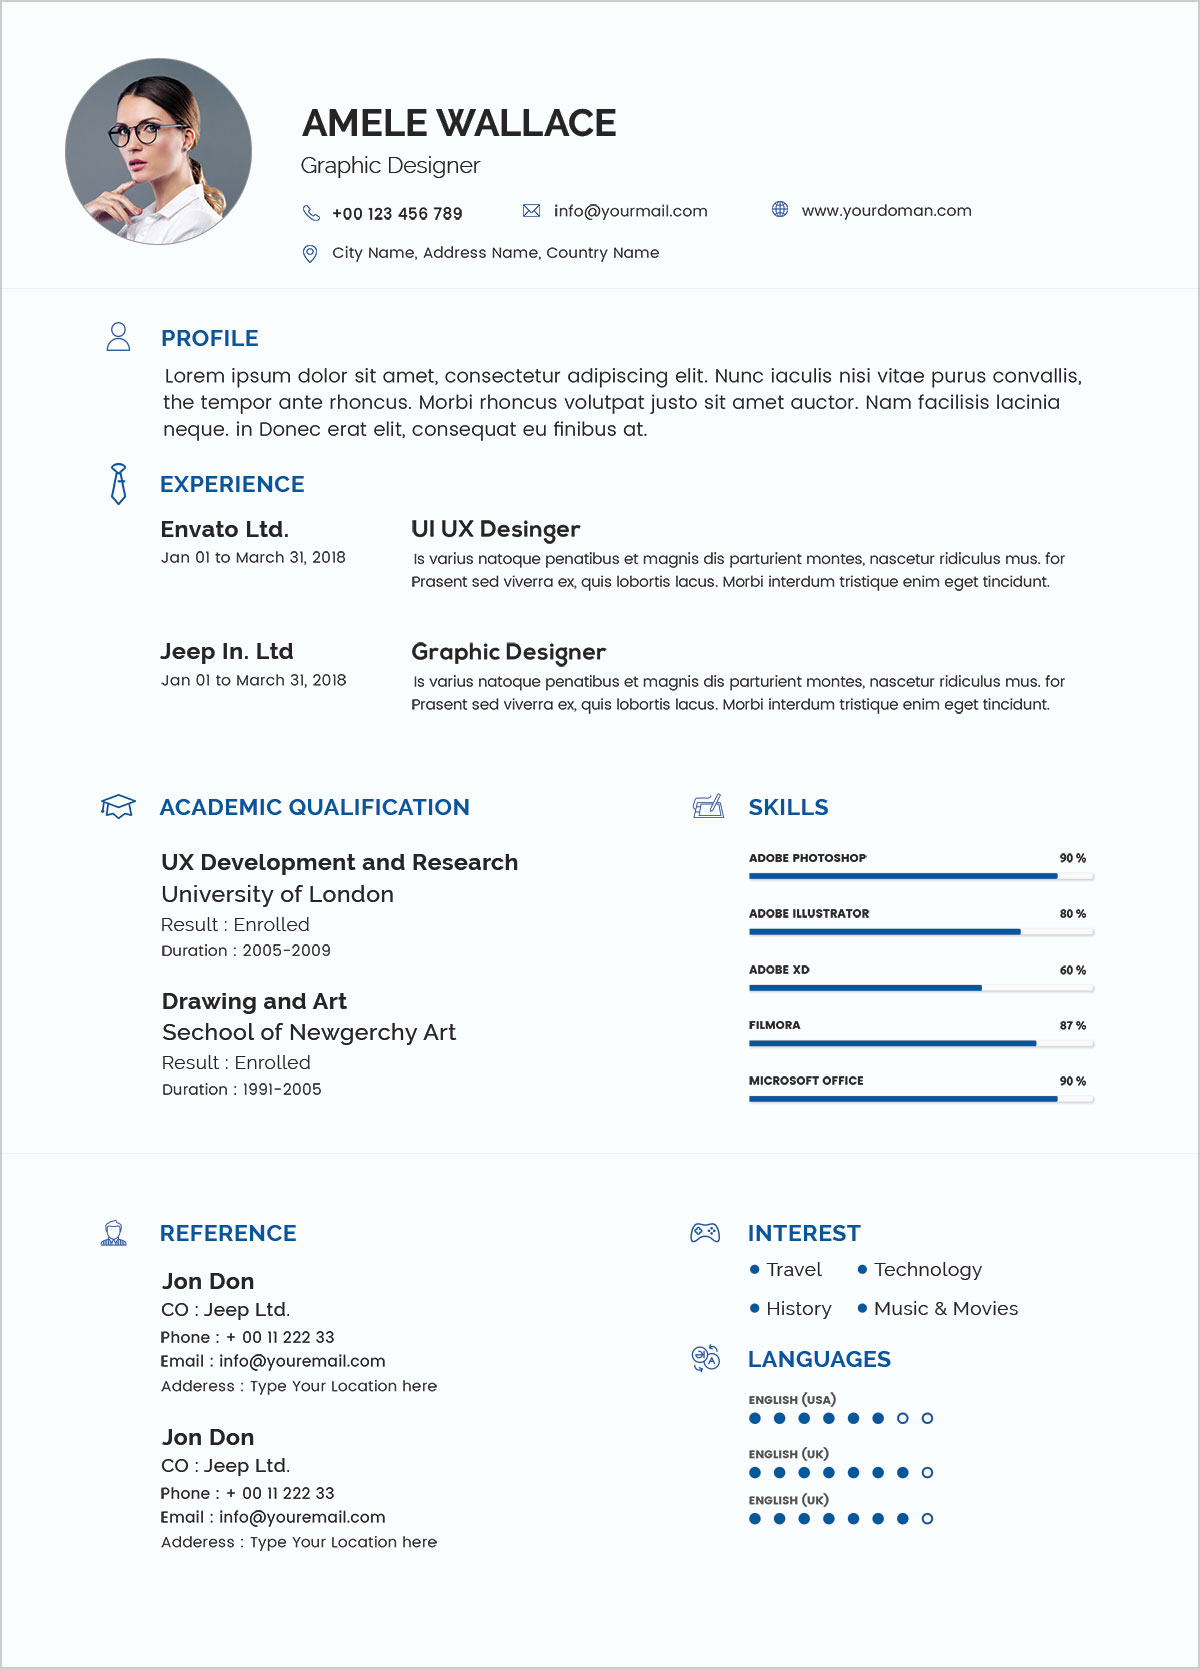 Free-Simple-Resume-Template-in-Photoshop-PSD-Format-2